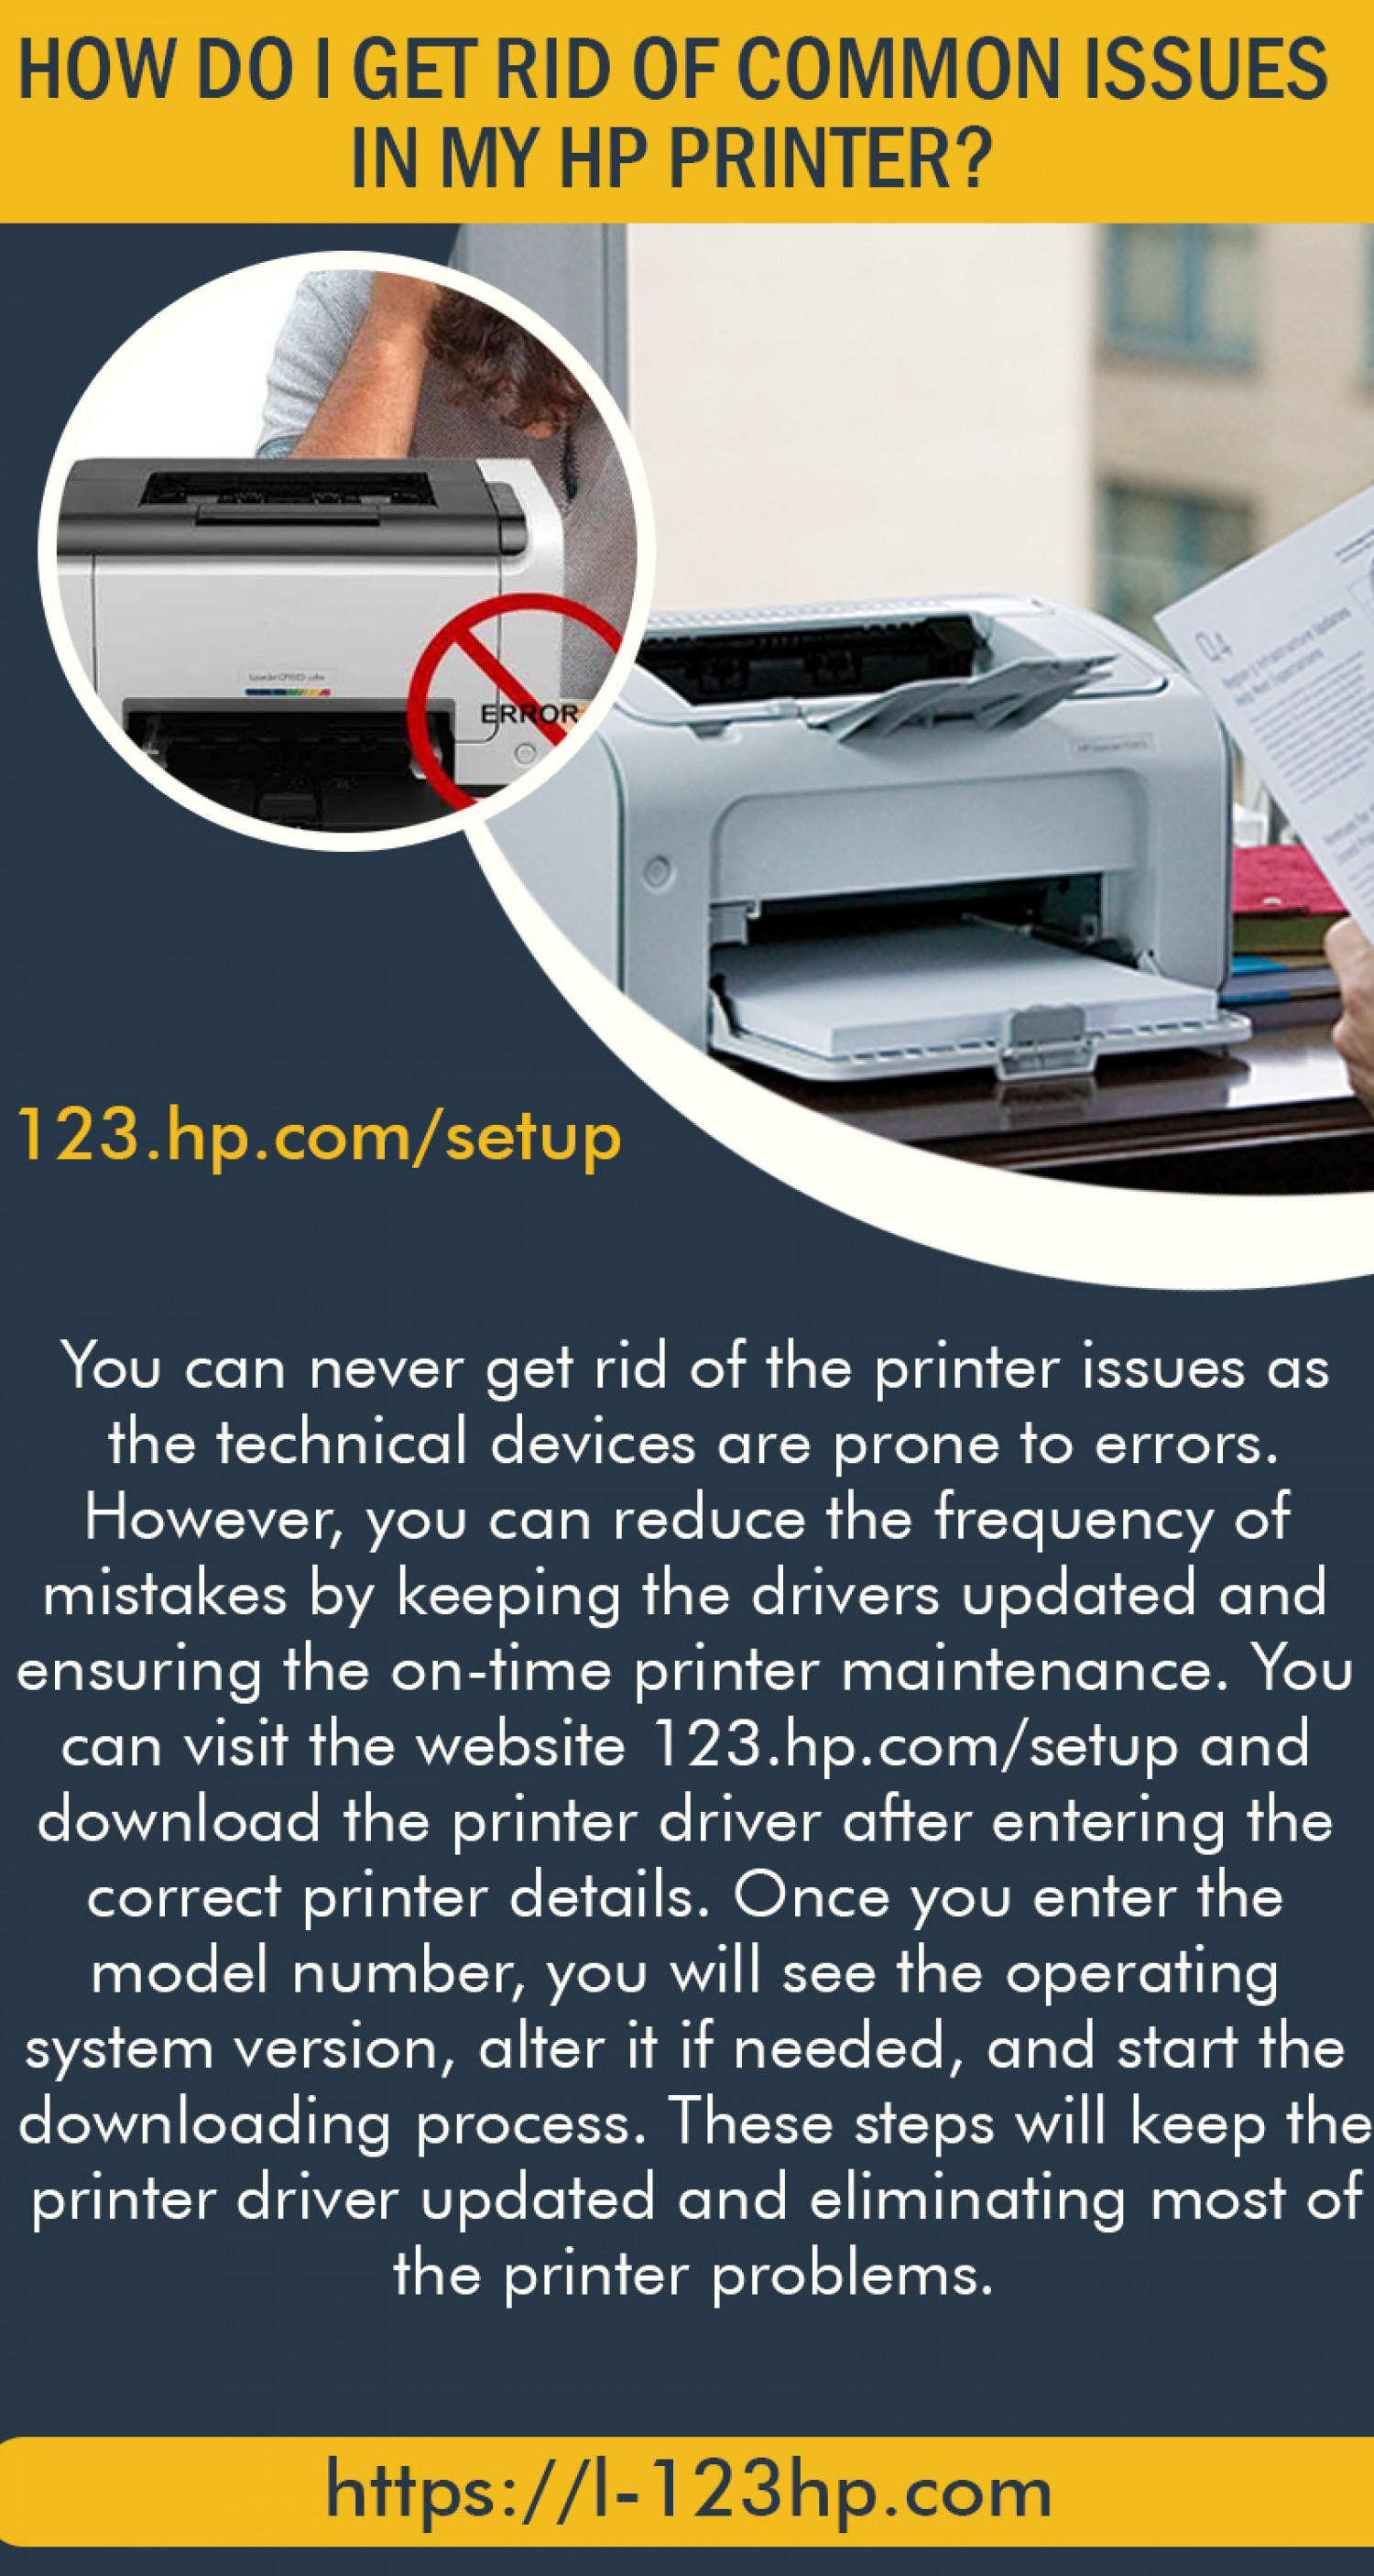 How do I get rid of common issues in my HP printer? Infographic